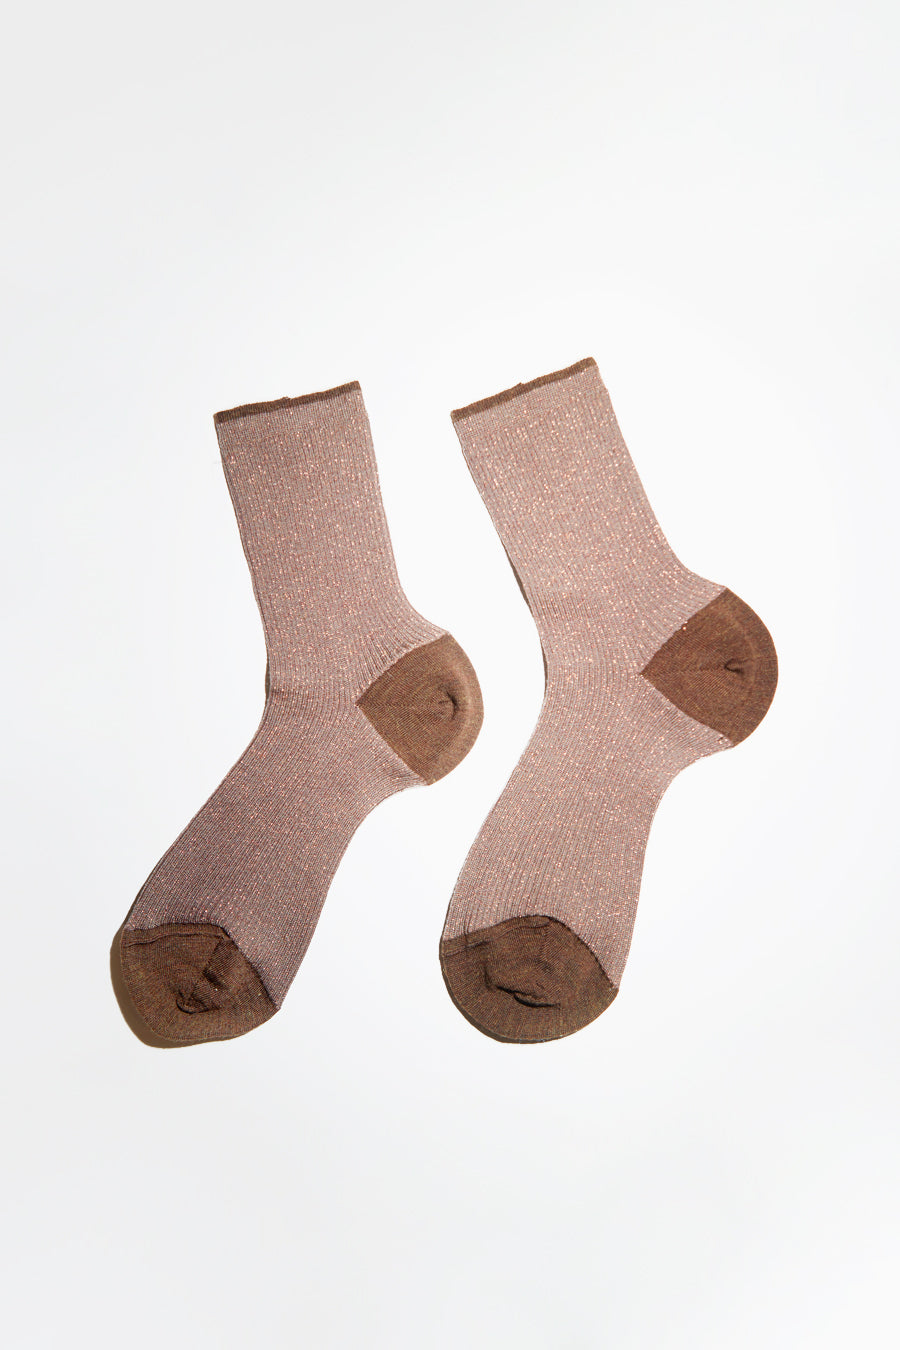 Maria La Rosa Wool Lurex Mid Calf Sock in Mocha